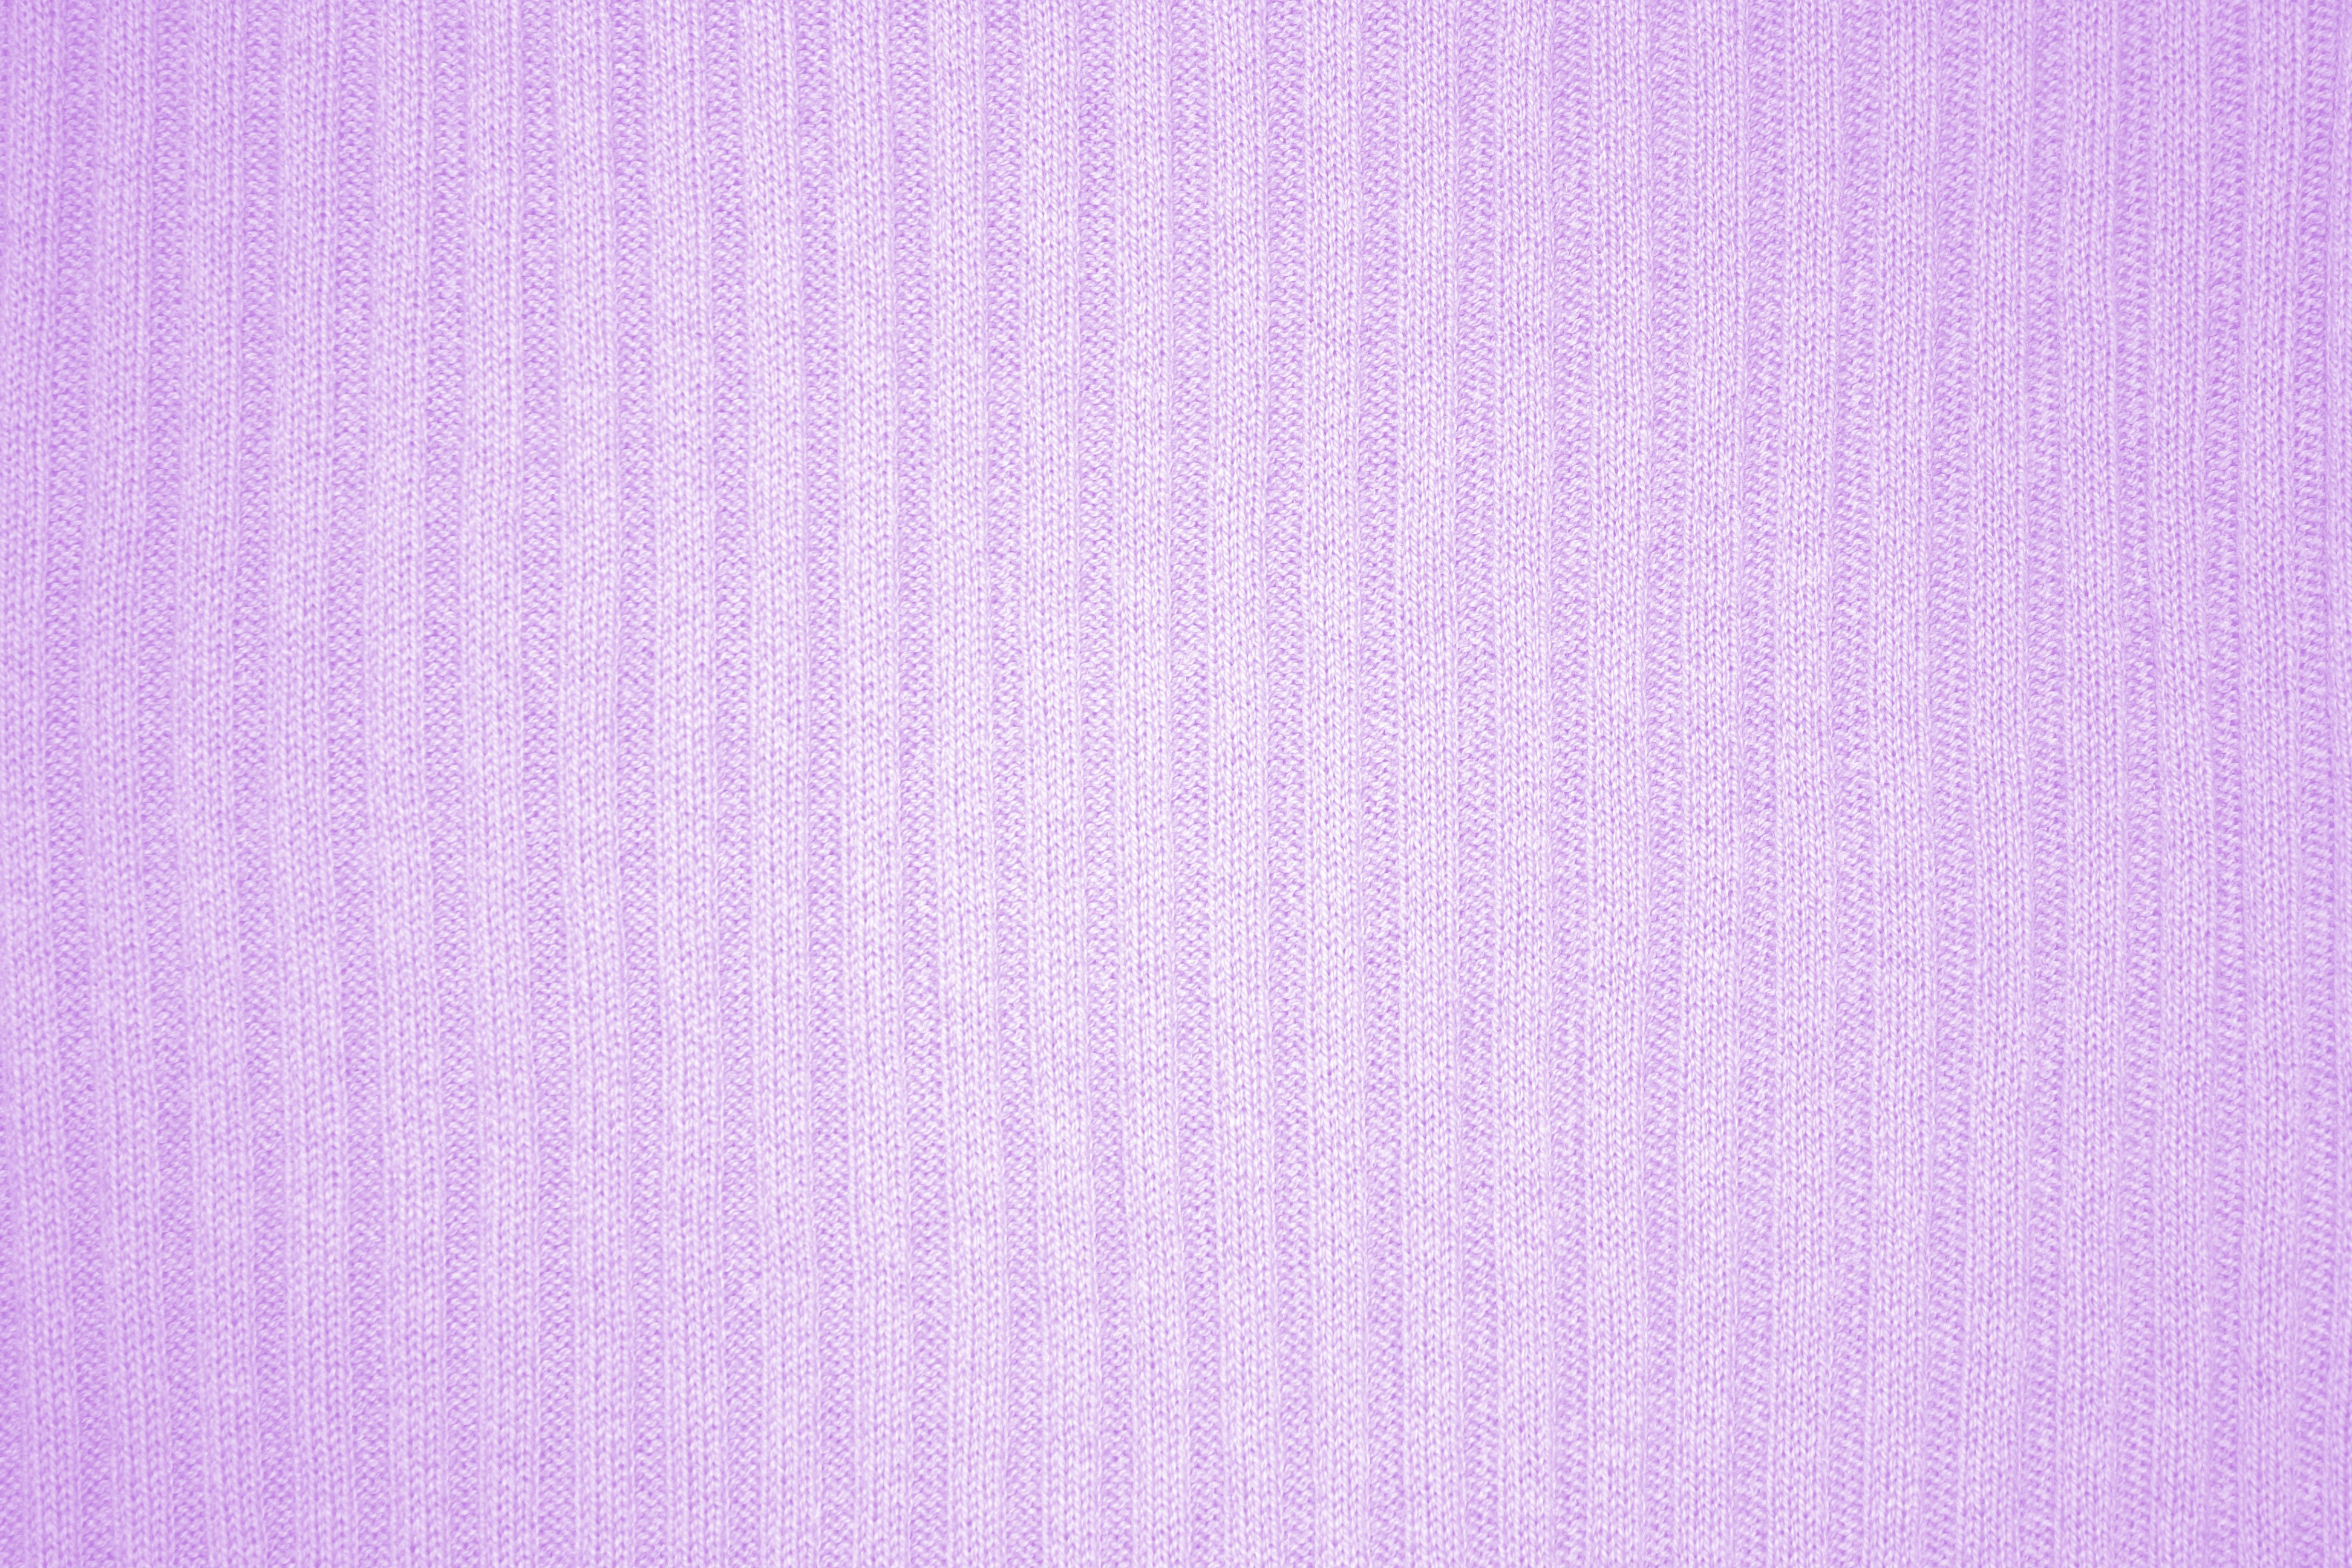 Light Lavender Color Background Images amp Pictures   Becuo 3888x2592